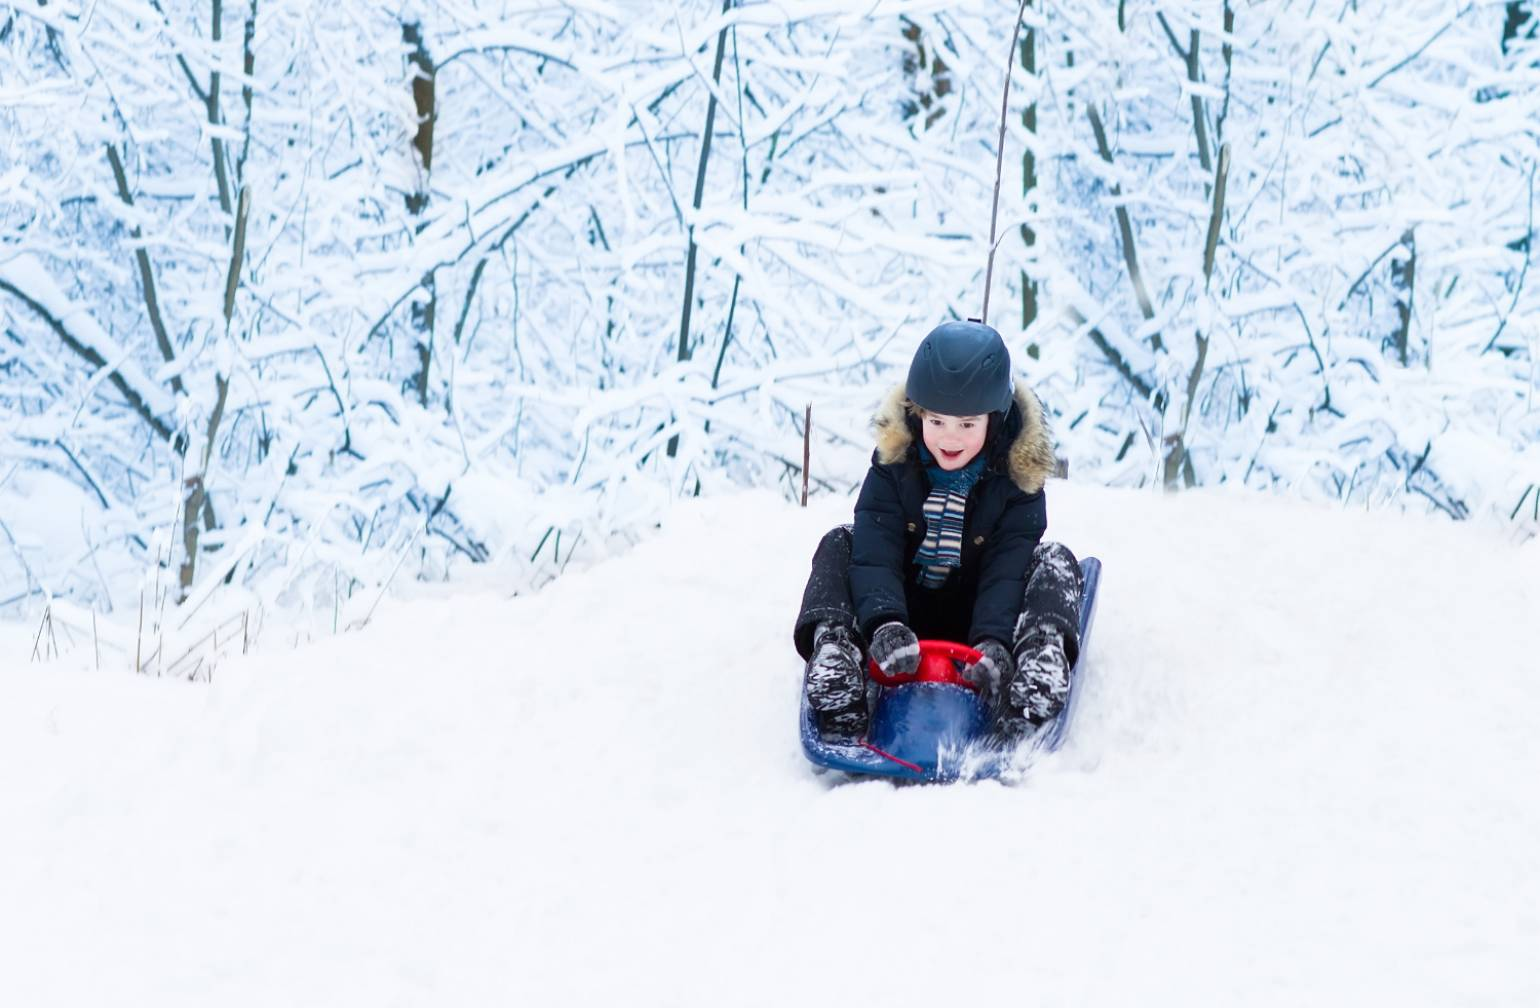 Boy sledding in the snow during winter.